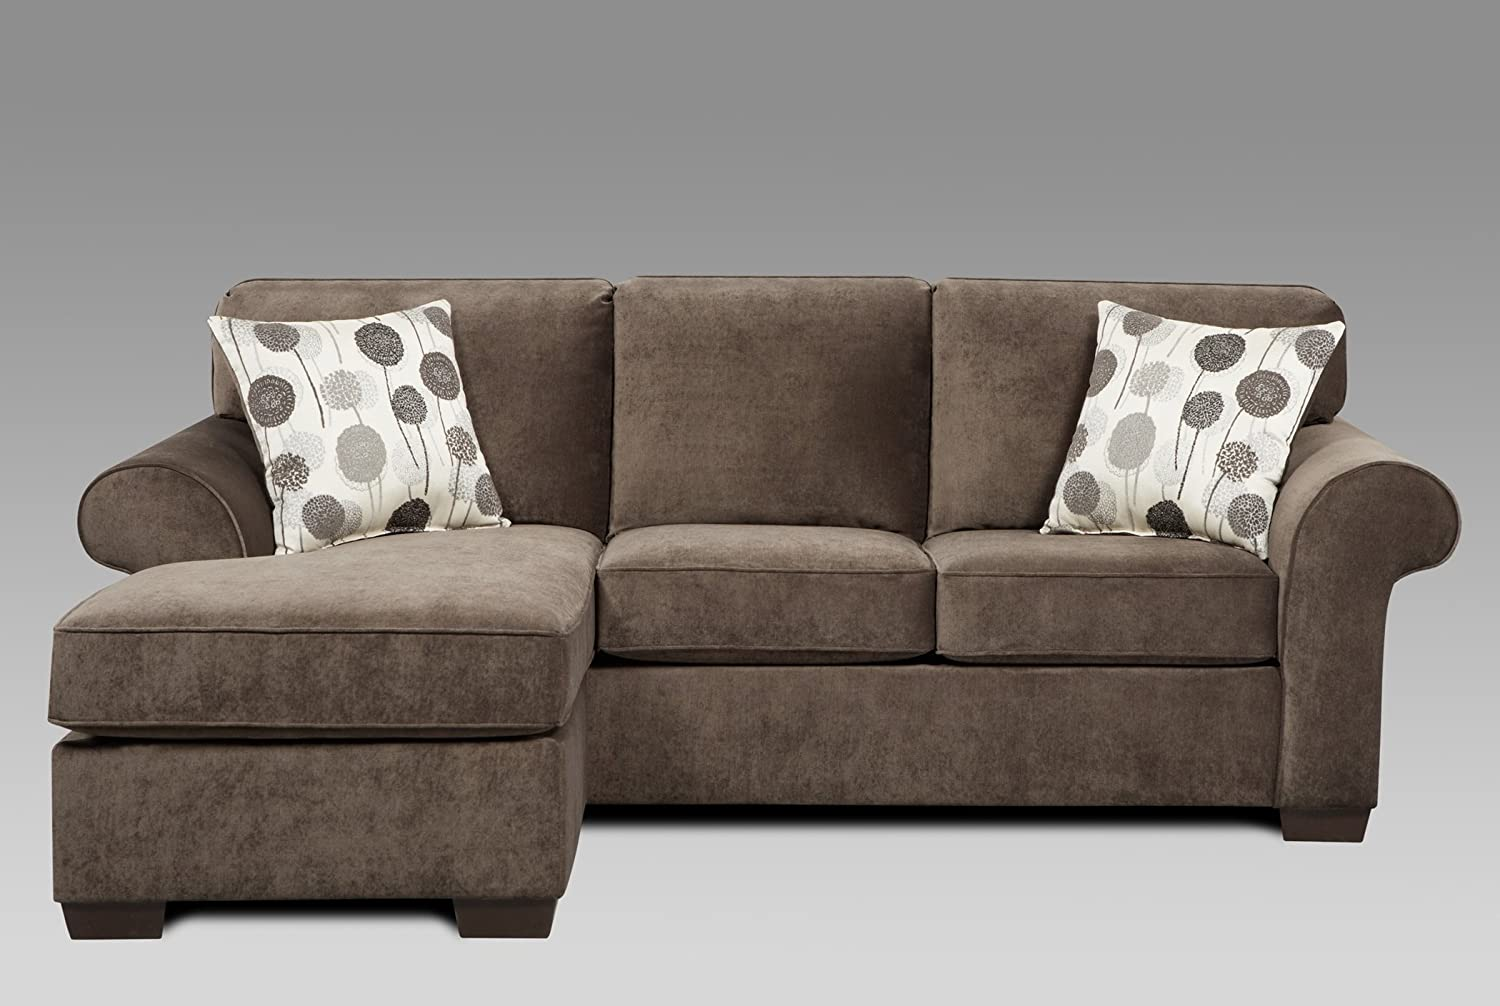 Amazon.com: Roundhill Furniture Fabric Sectional Sofa With 2 Pillows,  Elizabeth Ash: Kitchen U0026 Dining